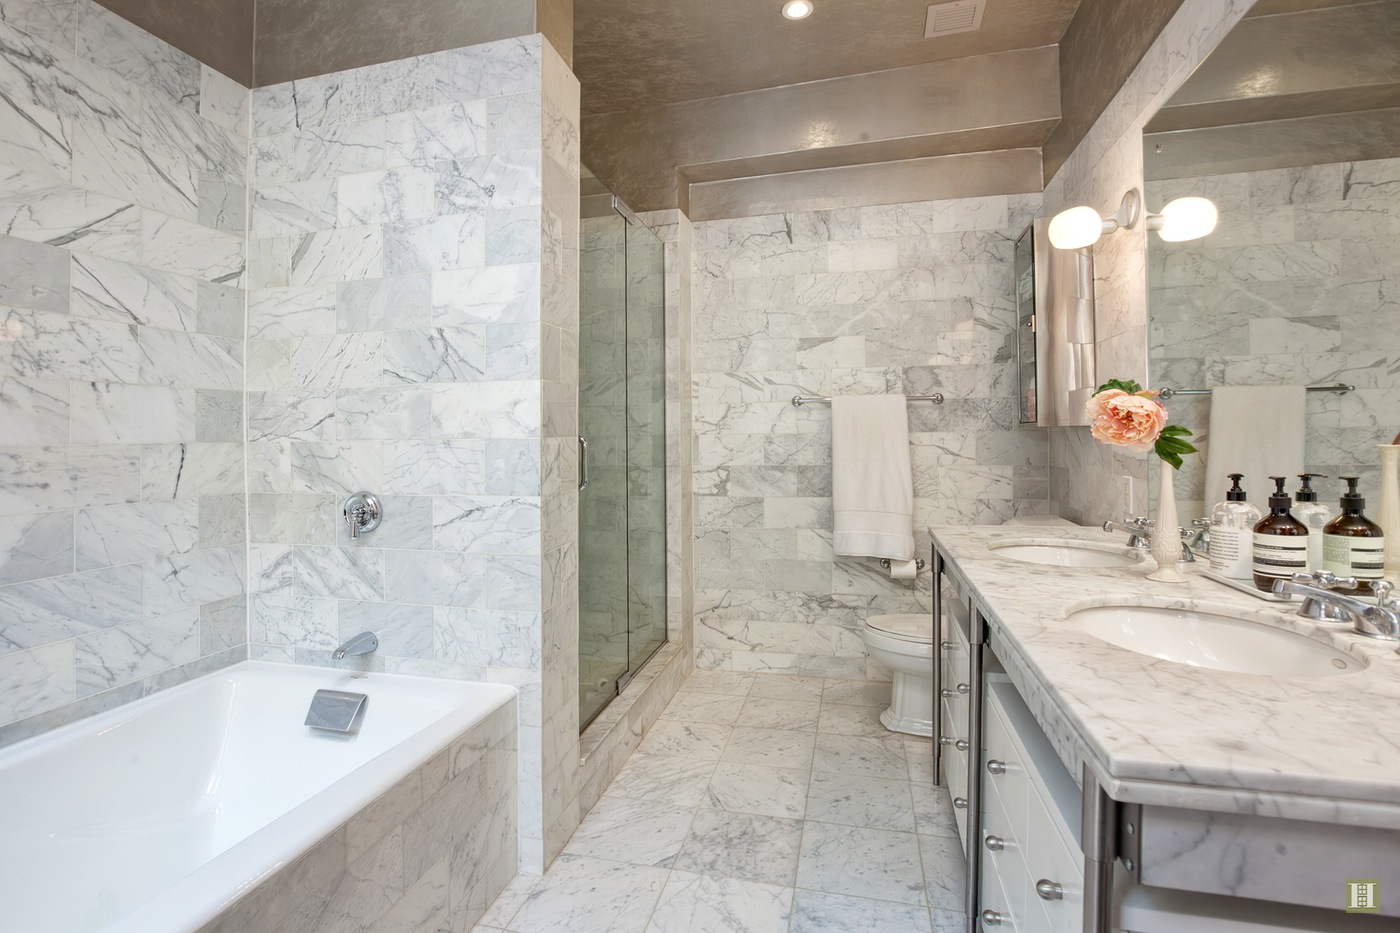 The master bathroom walls are wrapped in marble.